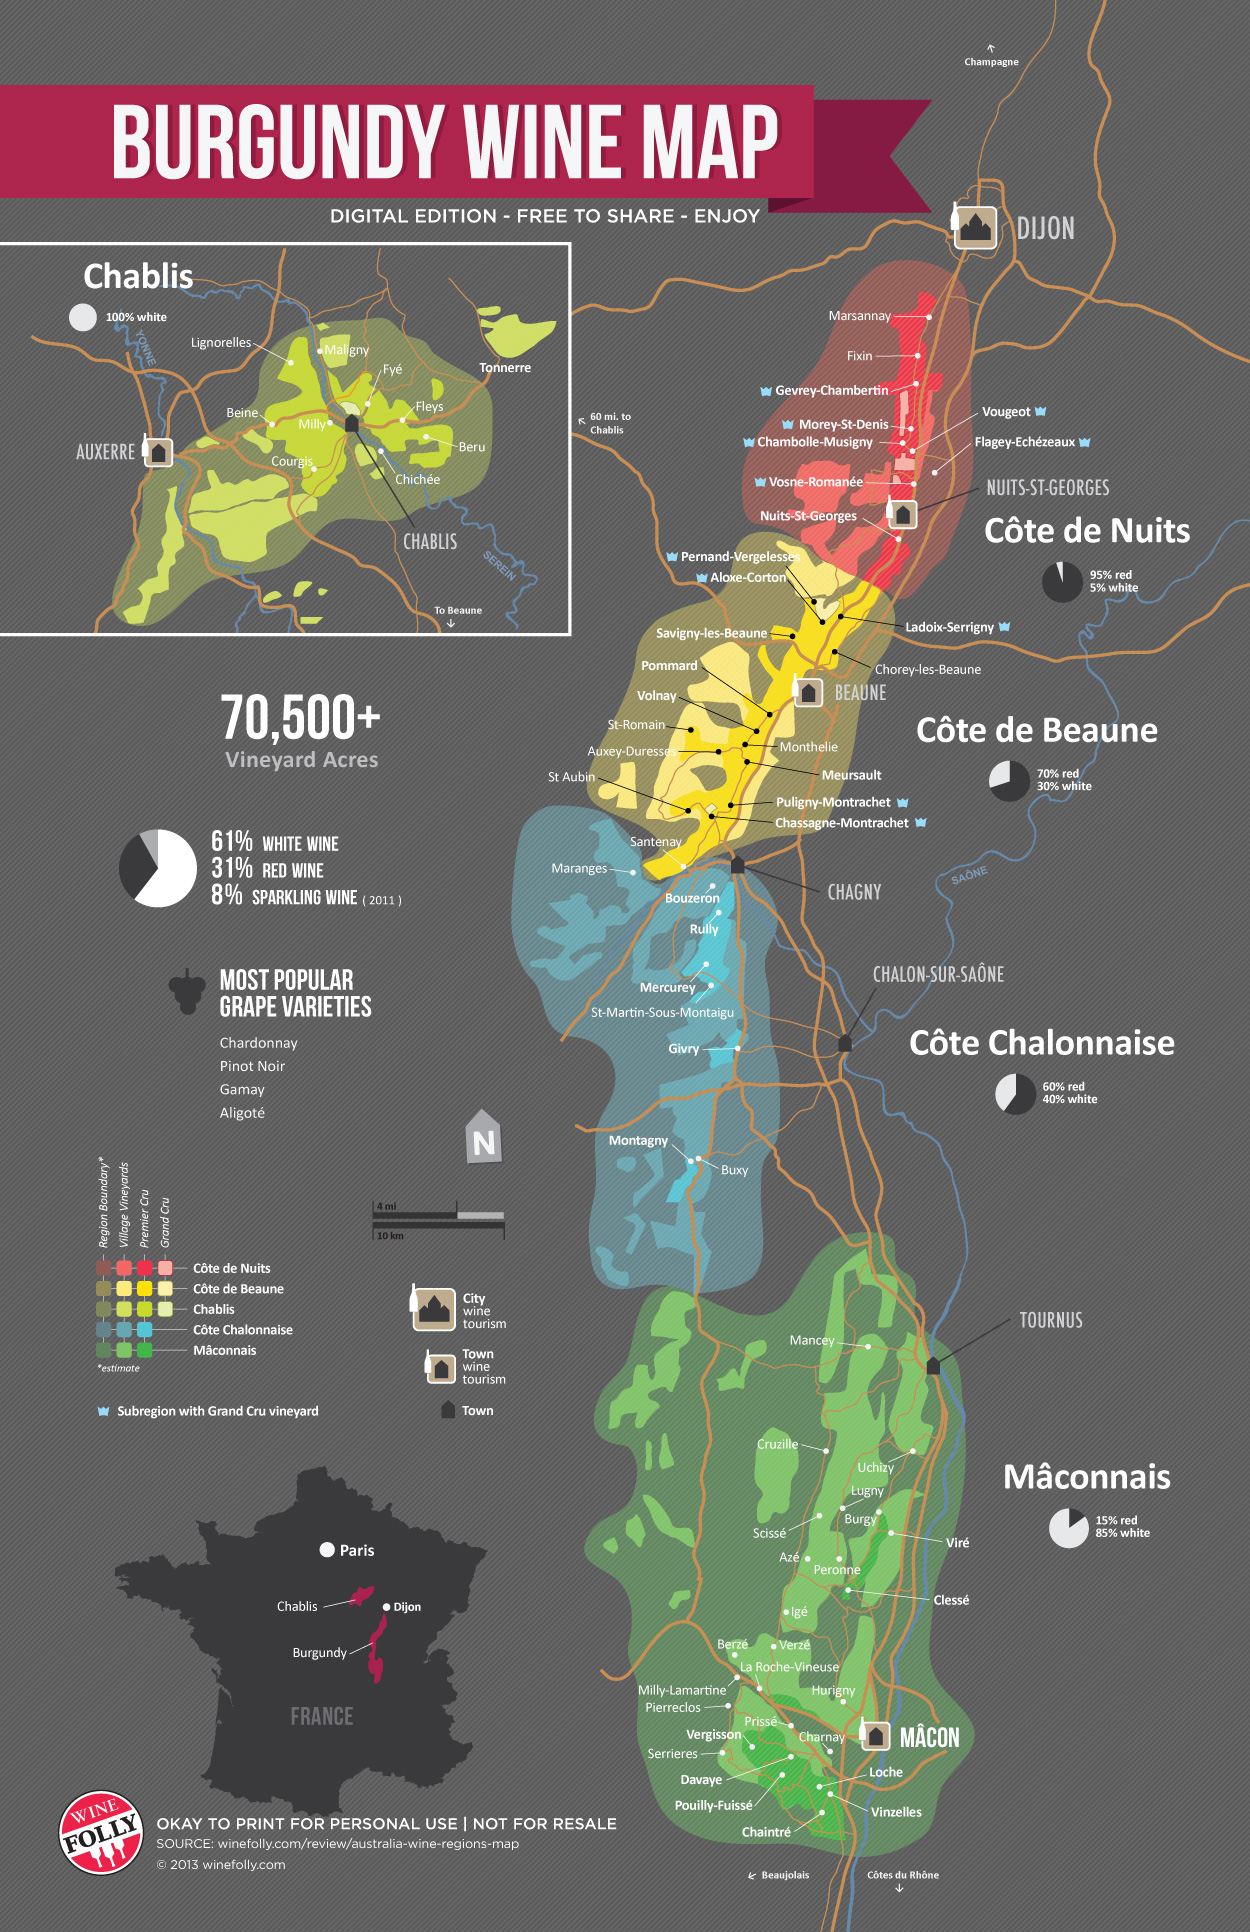 A Simple Guide to Burgundy Wine (with Maps) | Wine Folly